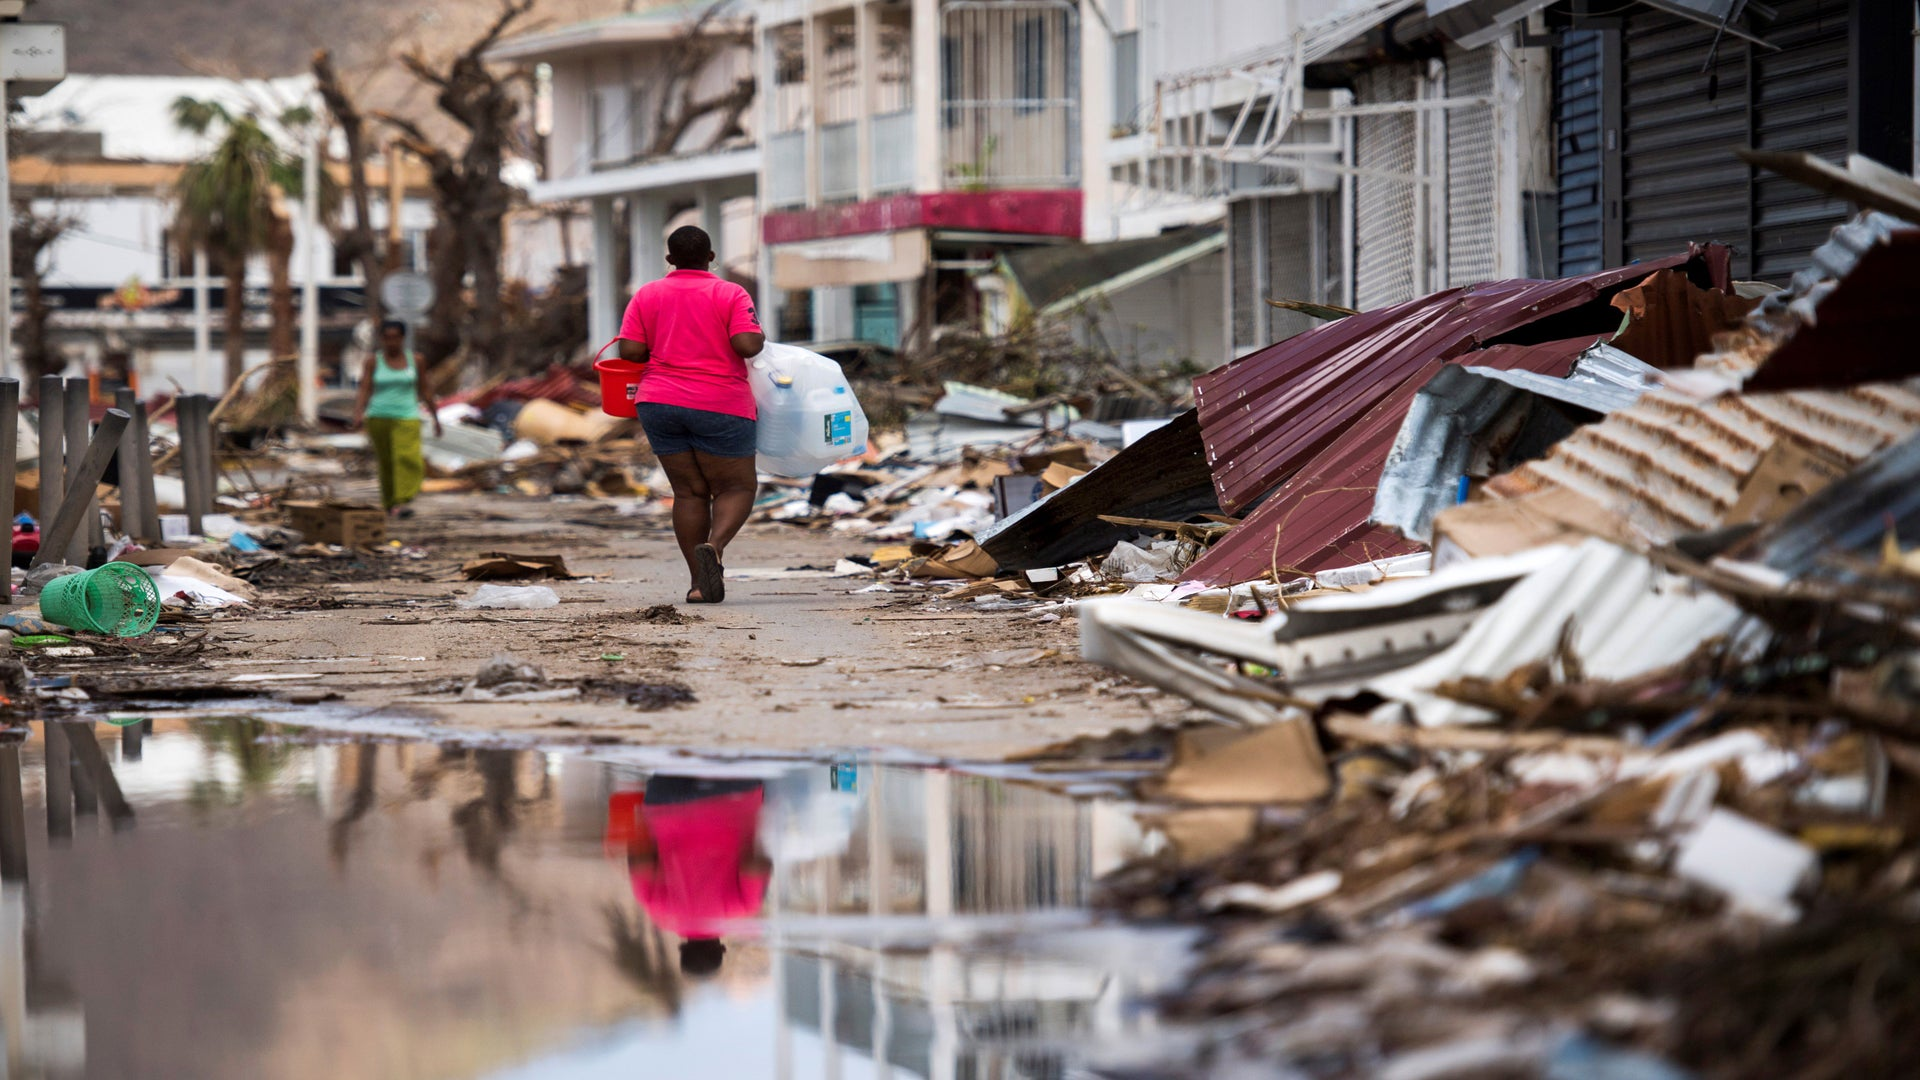 On Hurricanes, The U.S. Virgin Islands And Who Really Matters During Natural Disasters